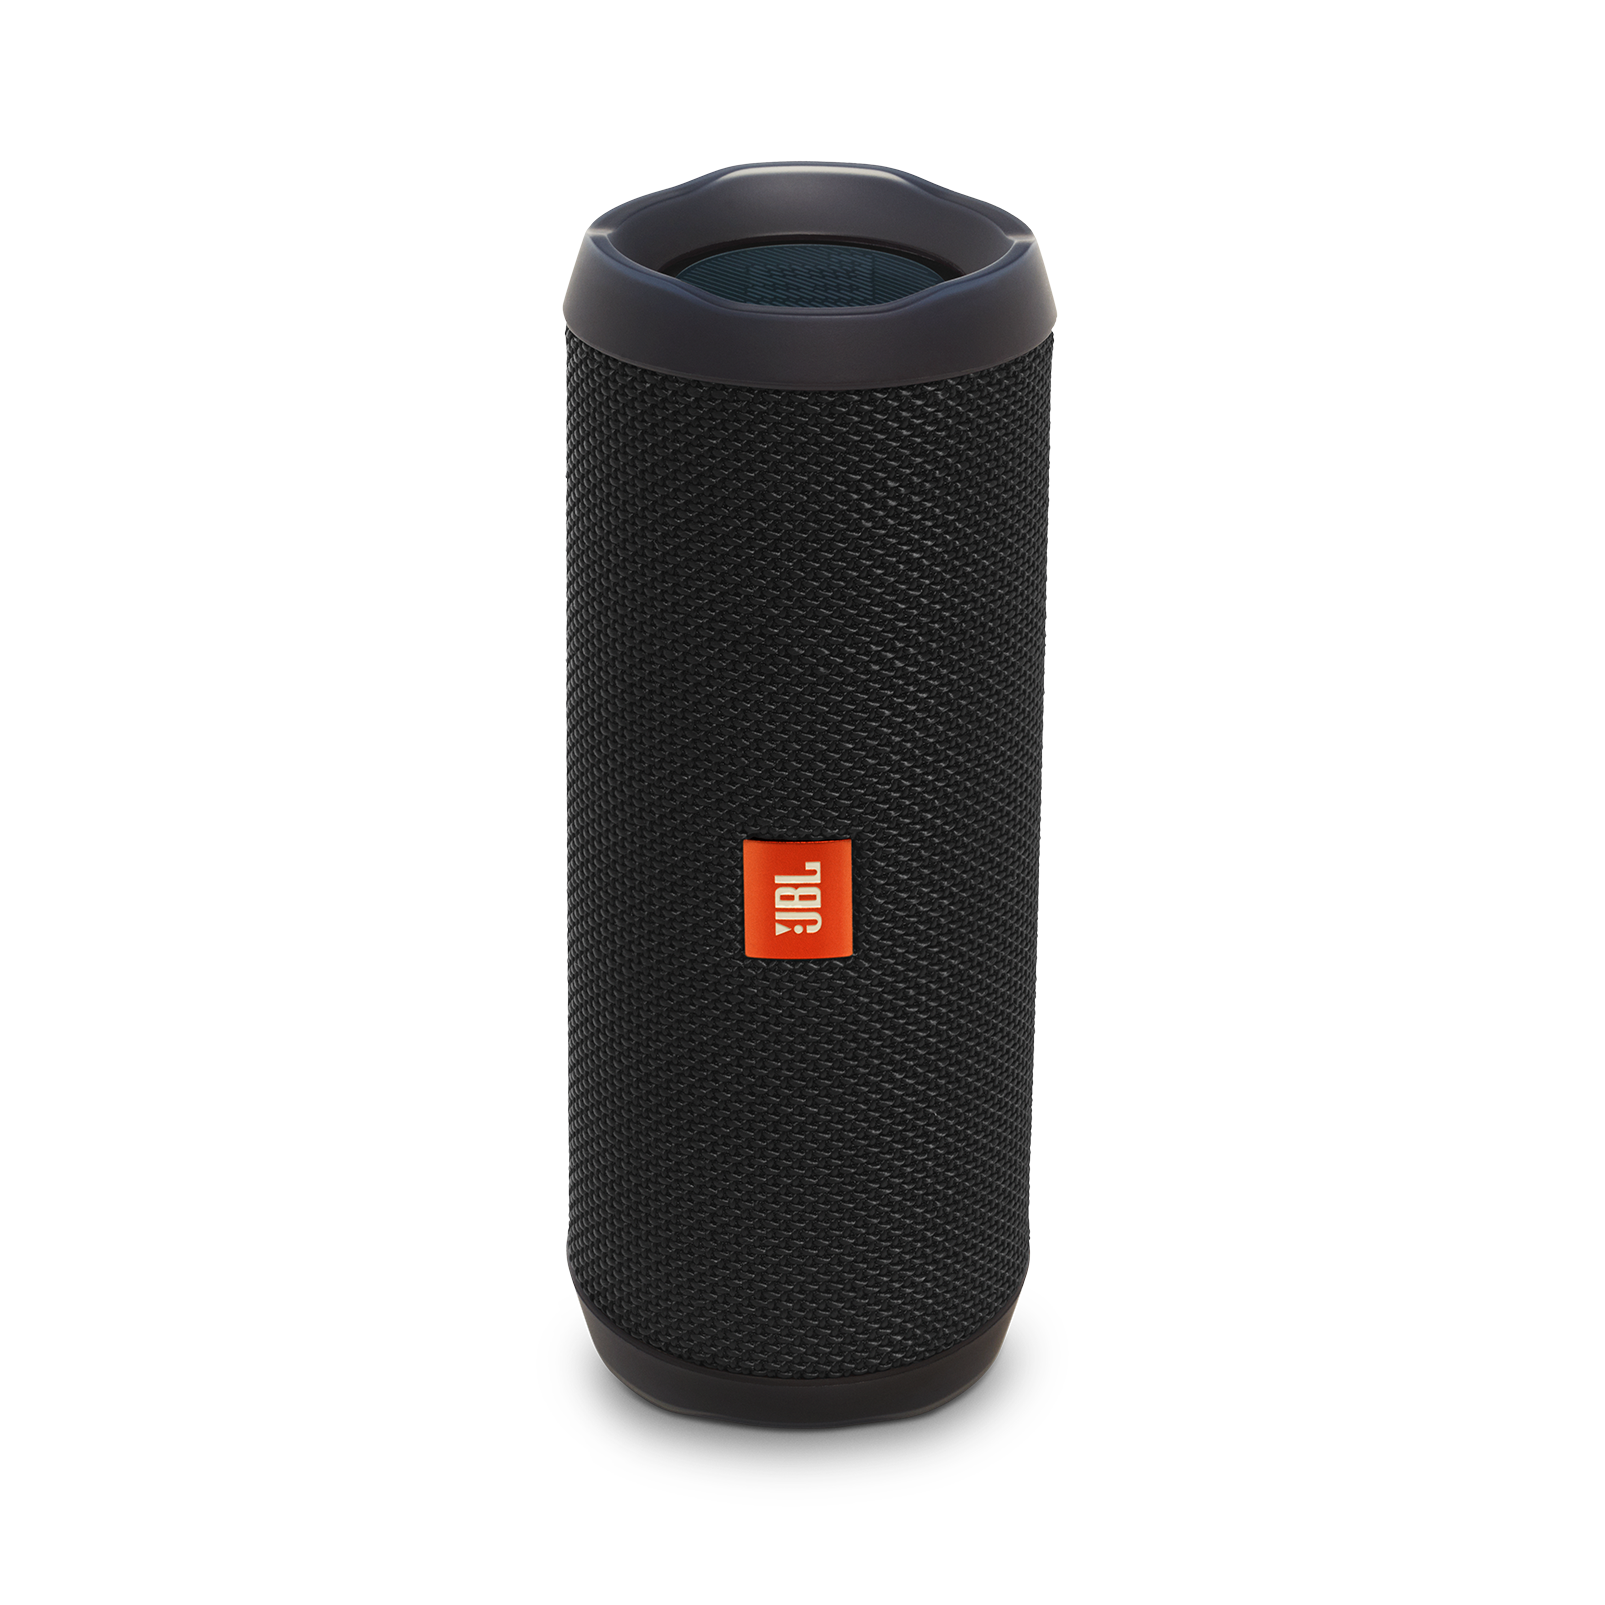 JBL Flip 4: A Thorough Review